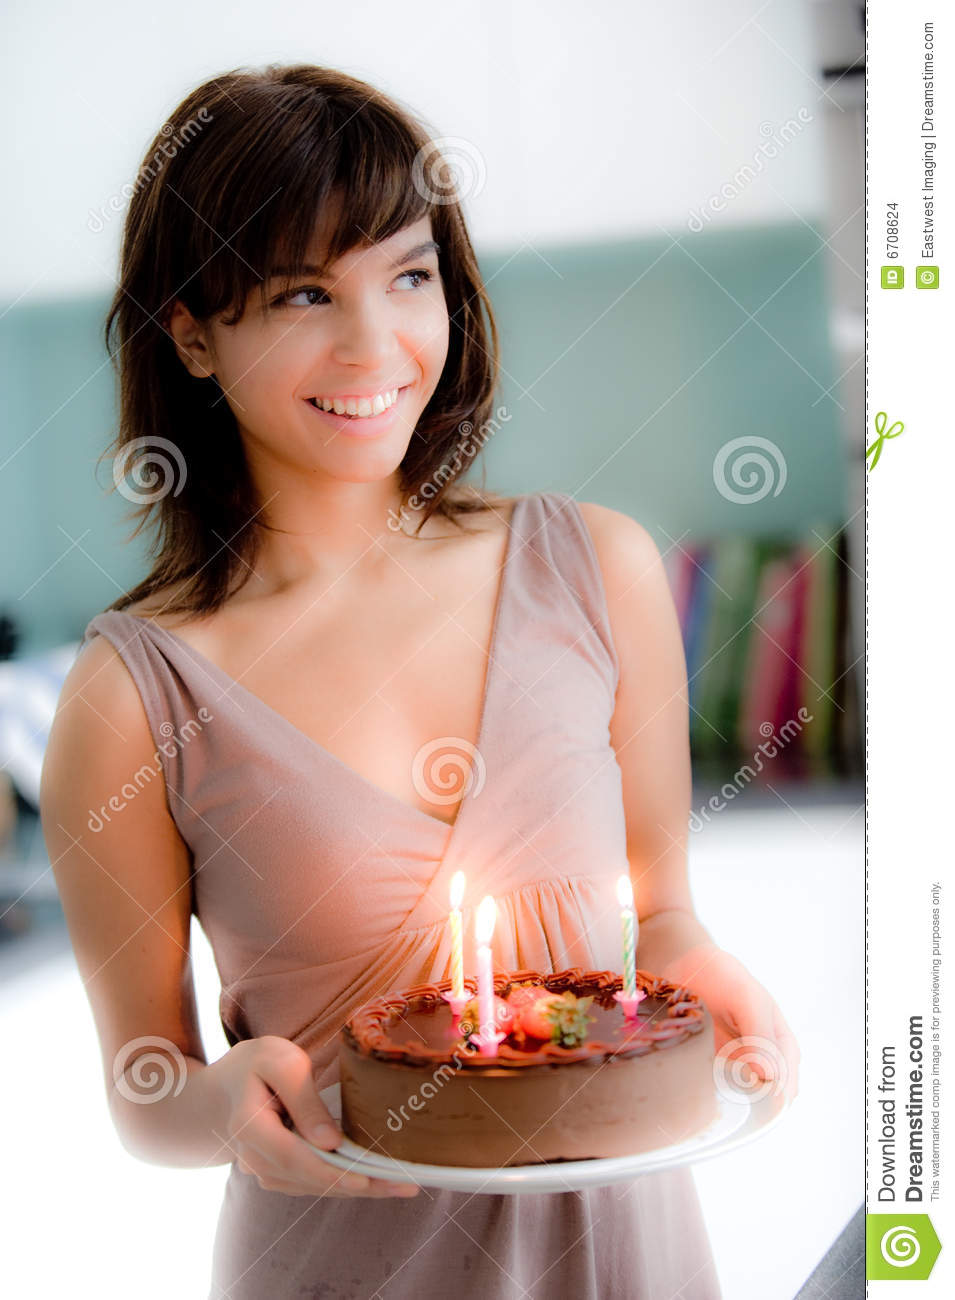 Images Of Girl Holding Cake Prezup for